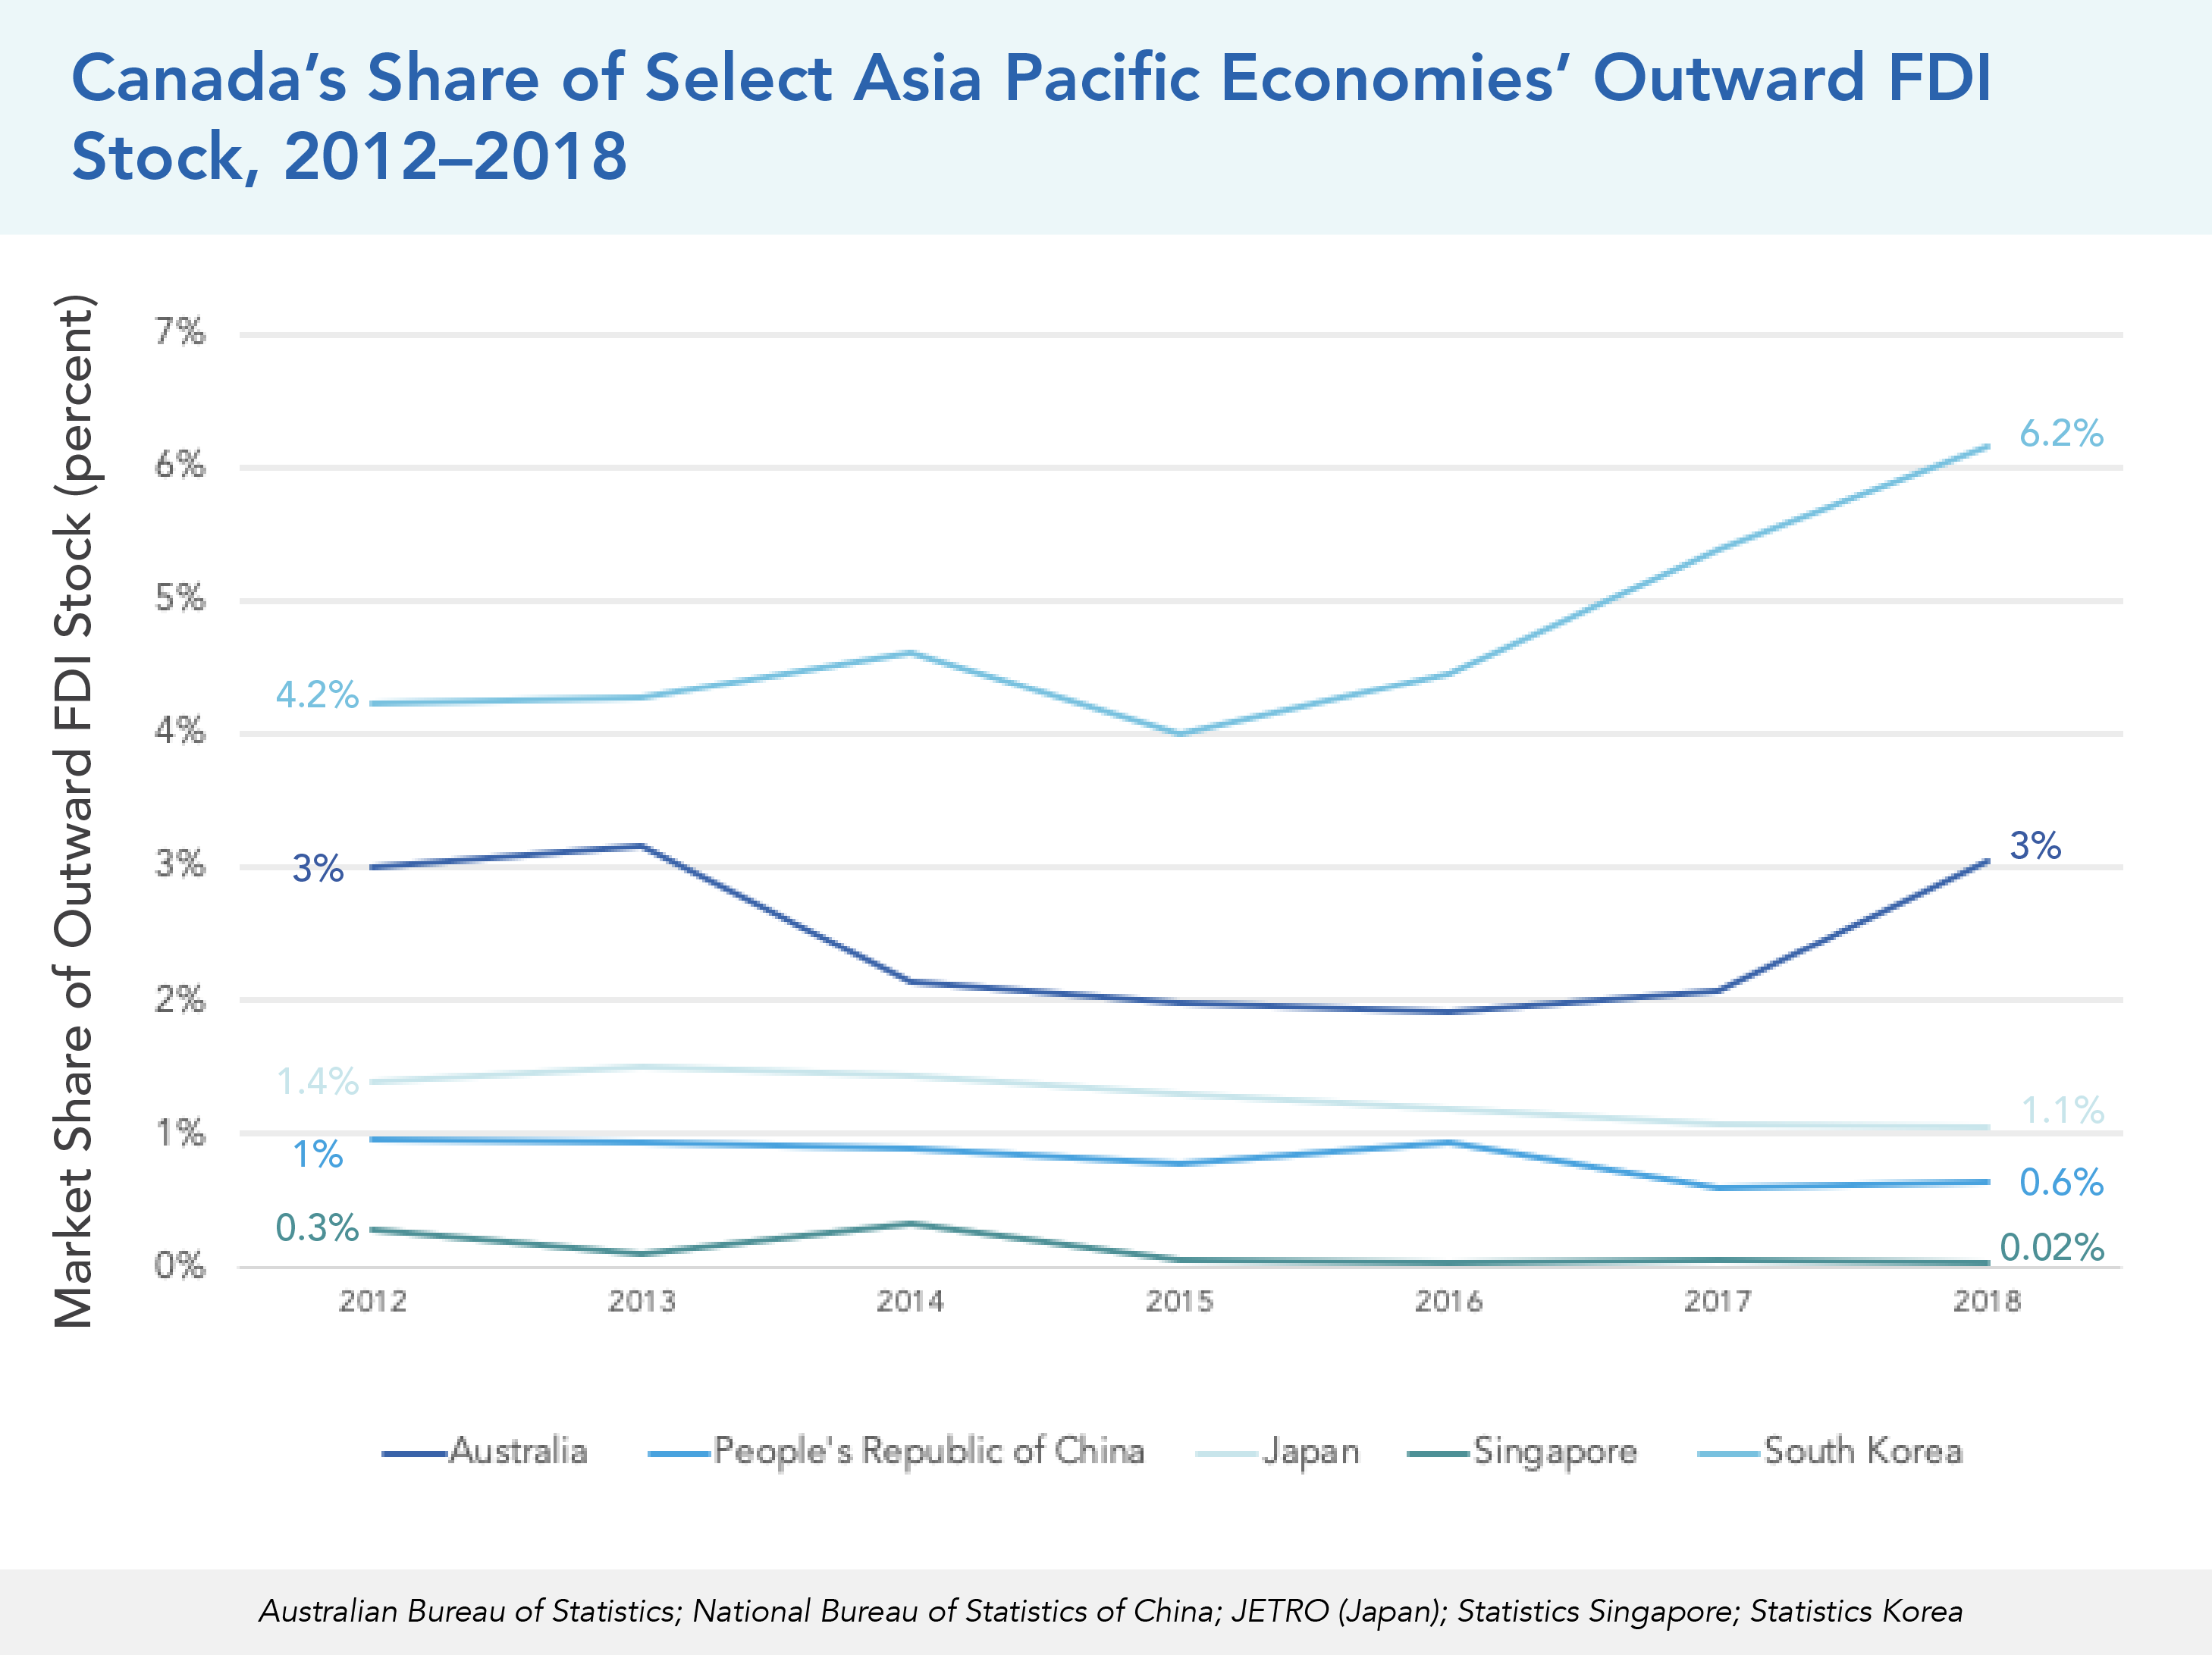 Canada's Share of Select Asia Pacific Economies' Outward FDI Stock, 2012–2018